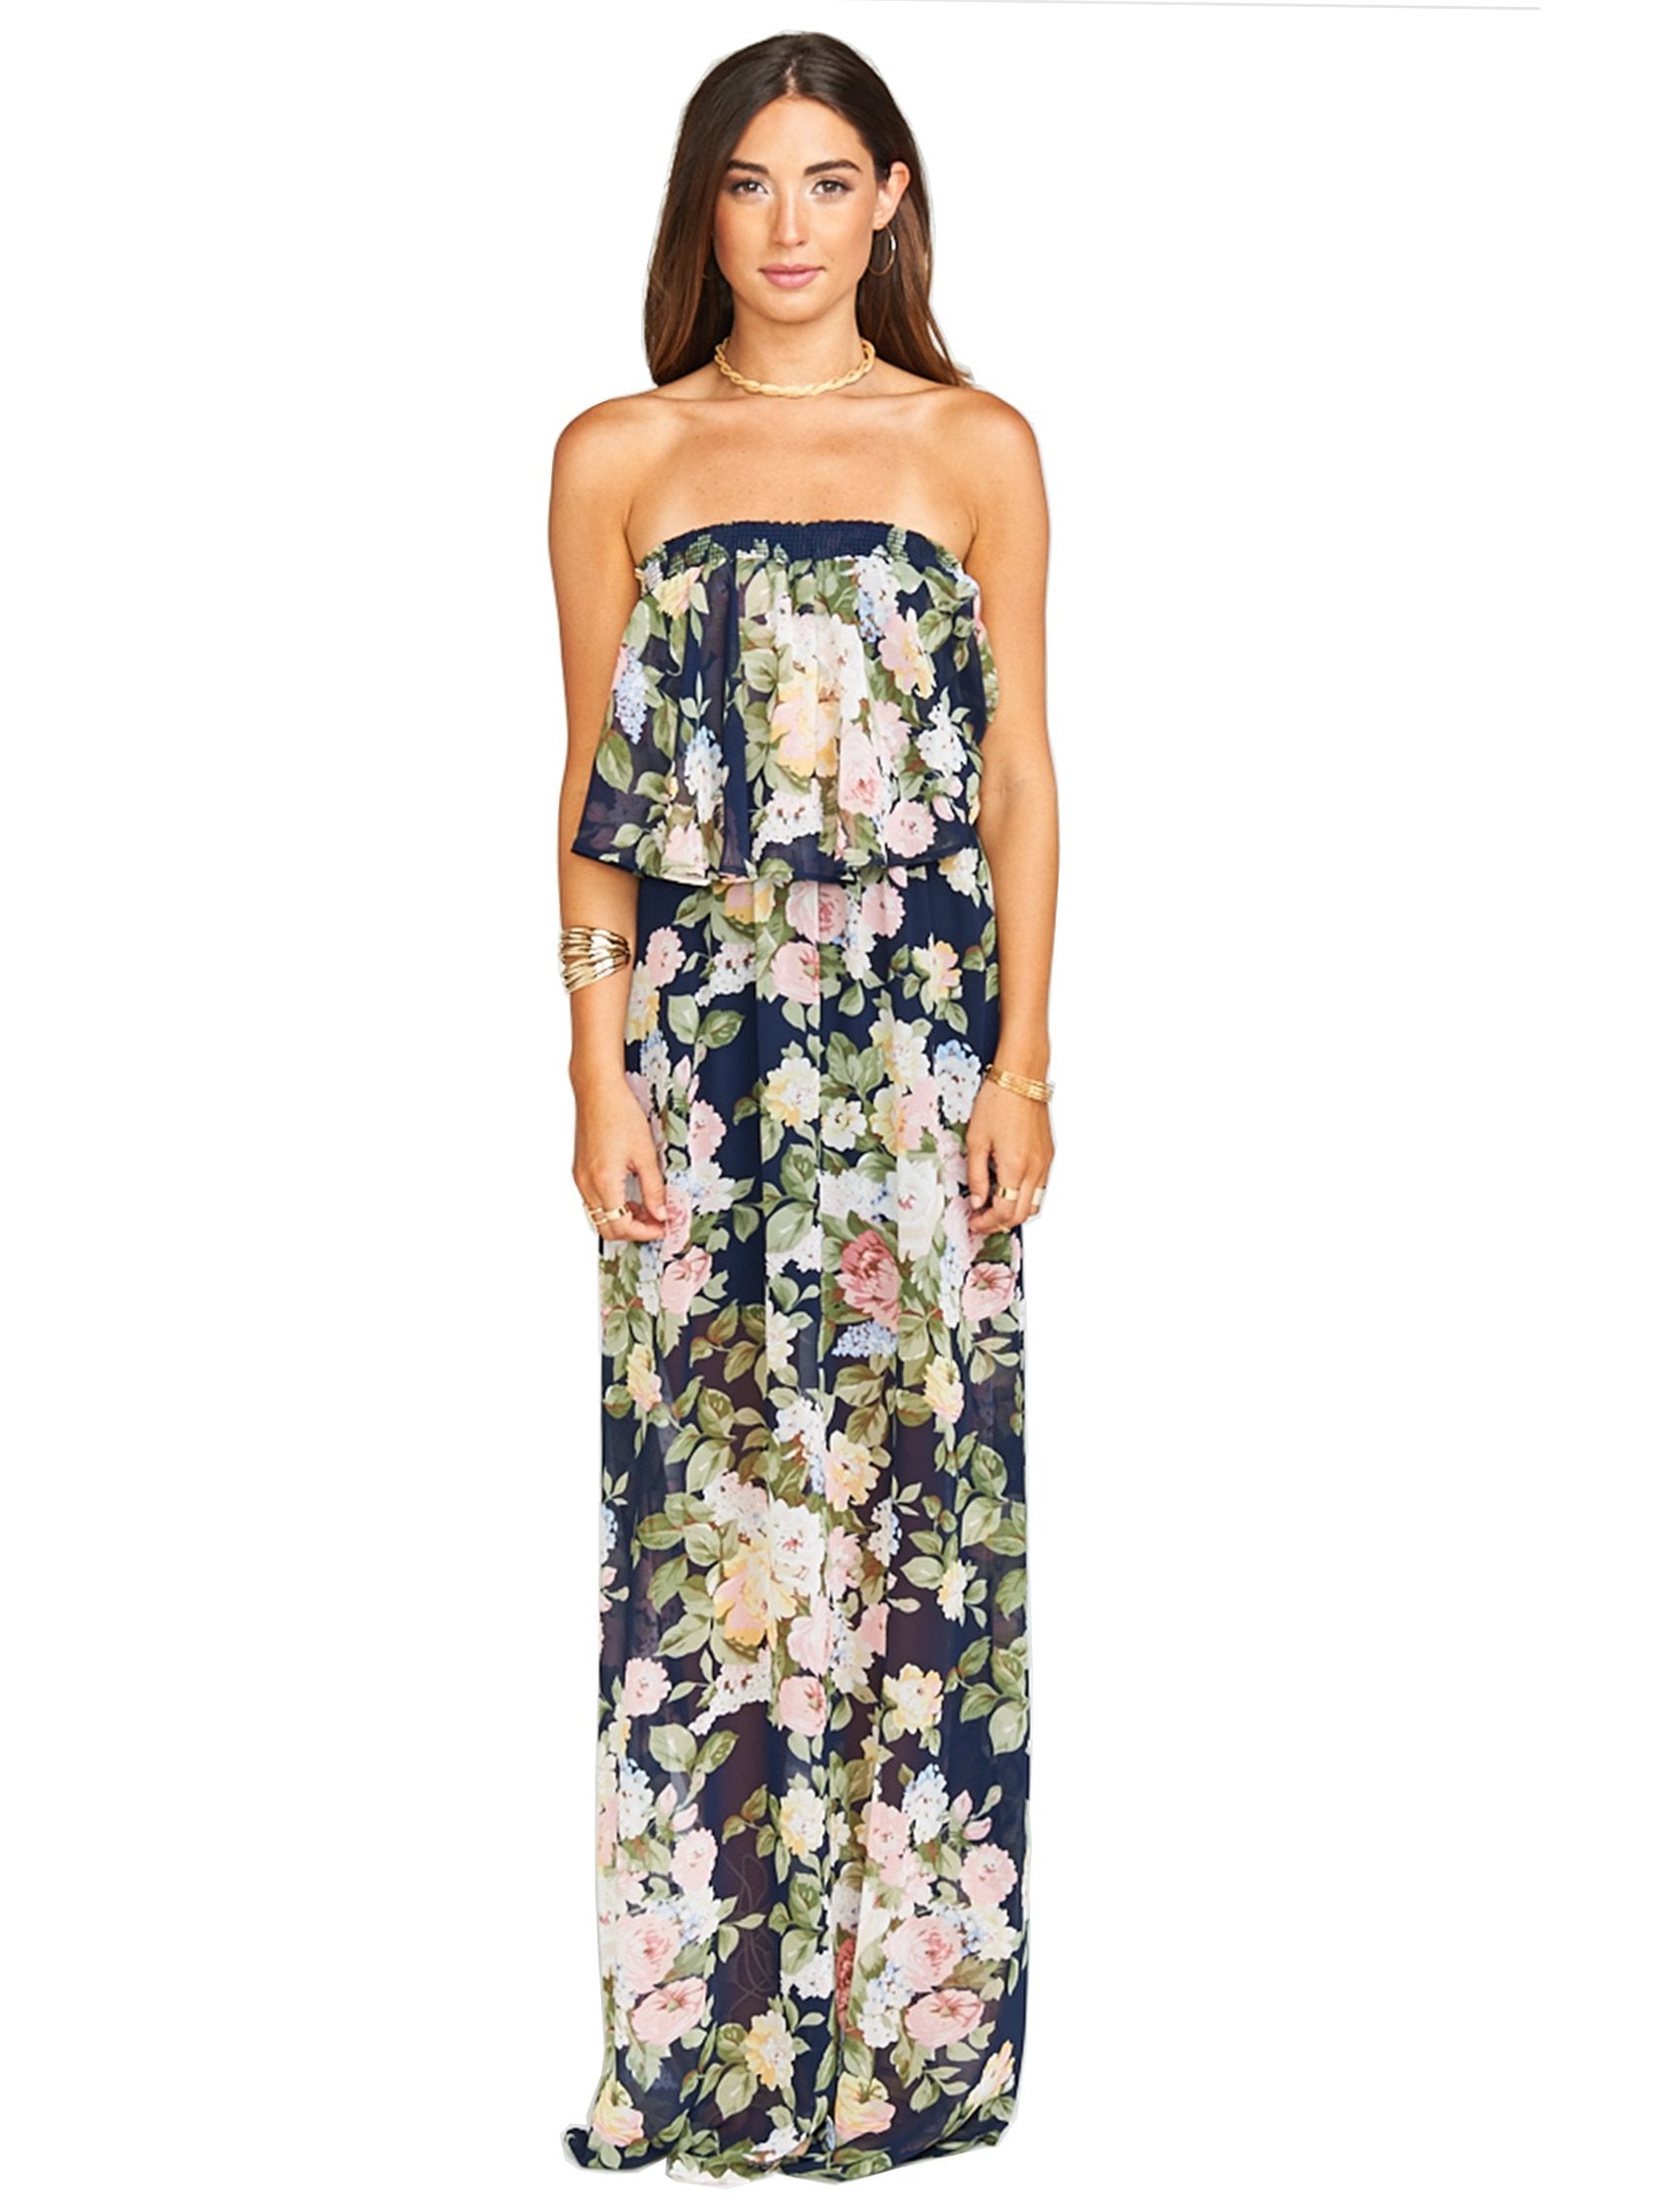 Girl outfit in a dress rental from Show Me Your Mumu called Hacienda Maxi Dress